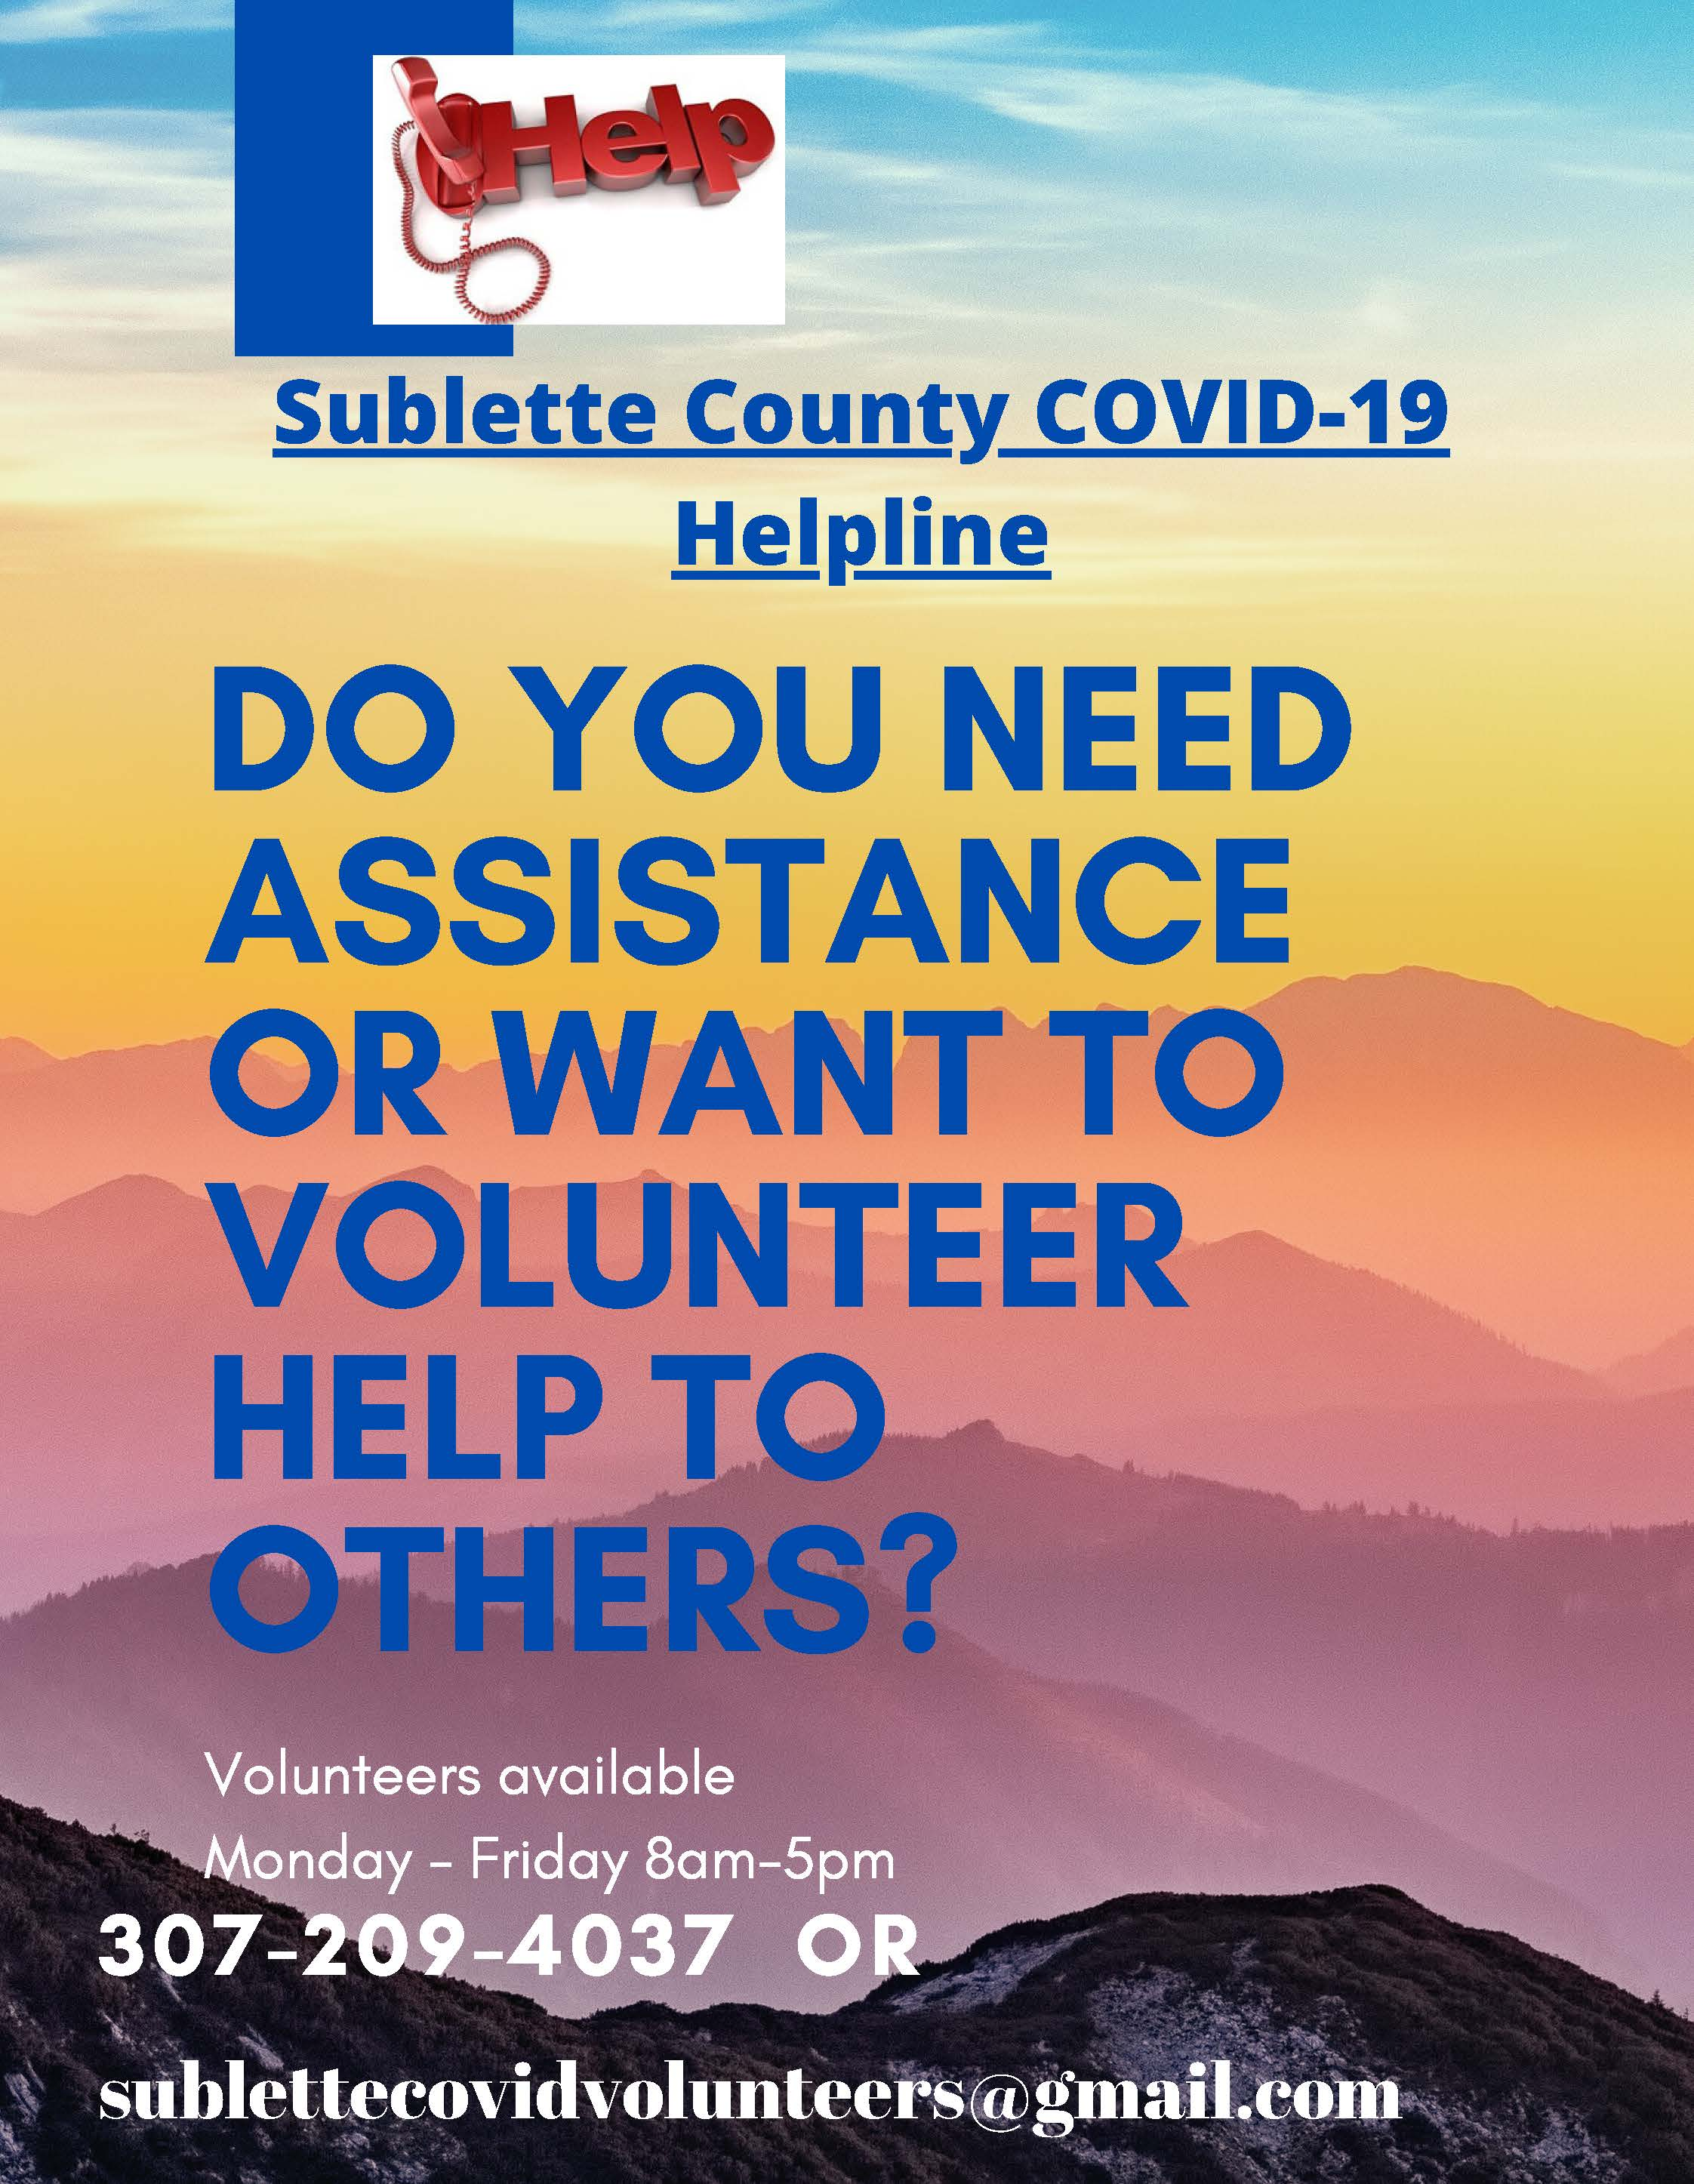 Sublette County COVID-19 Helpline Flyer